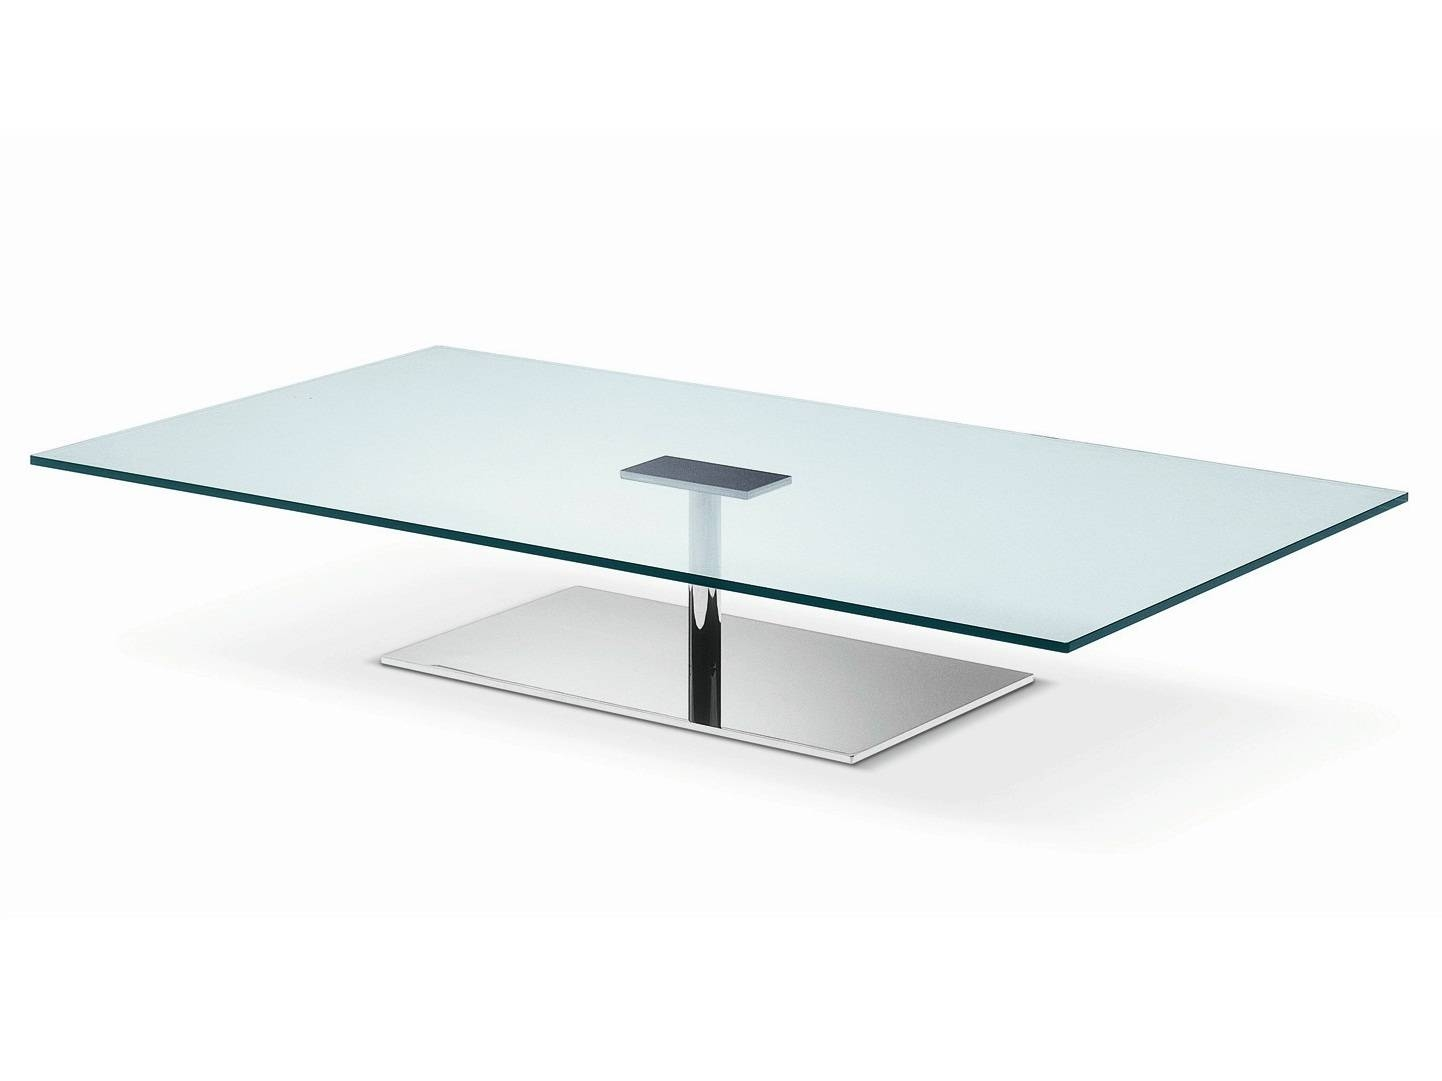 Superior Captivating Low Glass Coffee Table Square U2013 Low Black Glass Coffee With  Regard To Low Glass